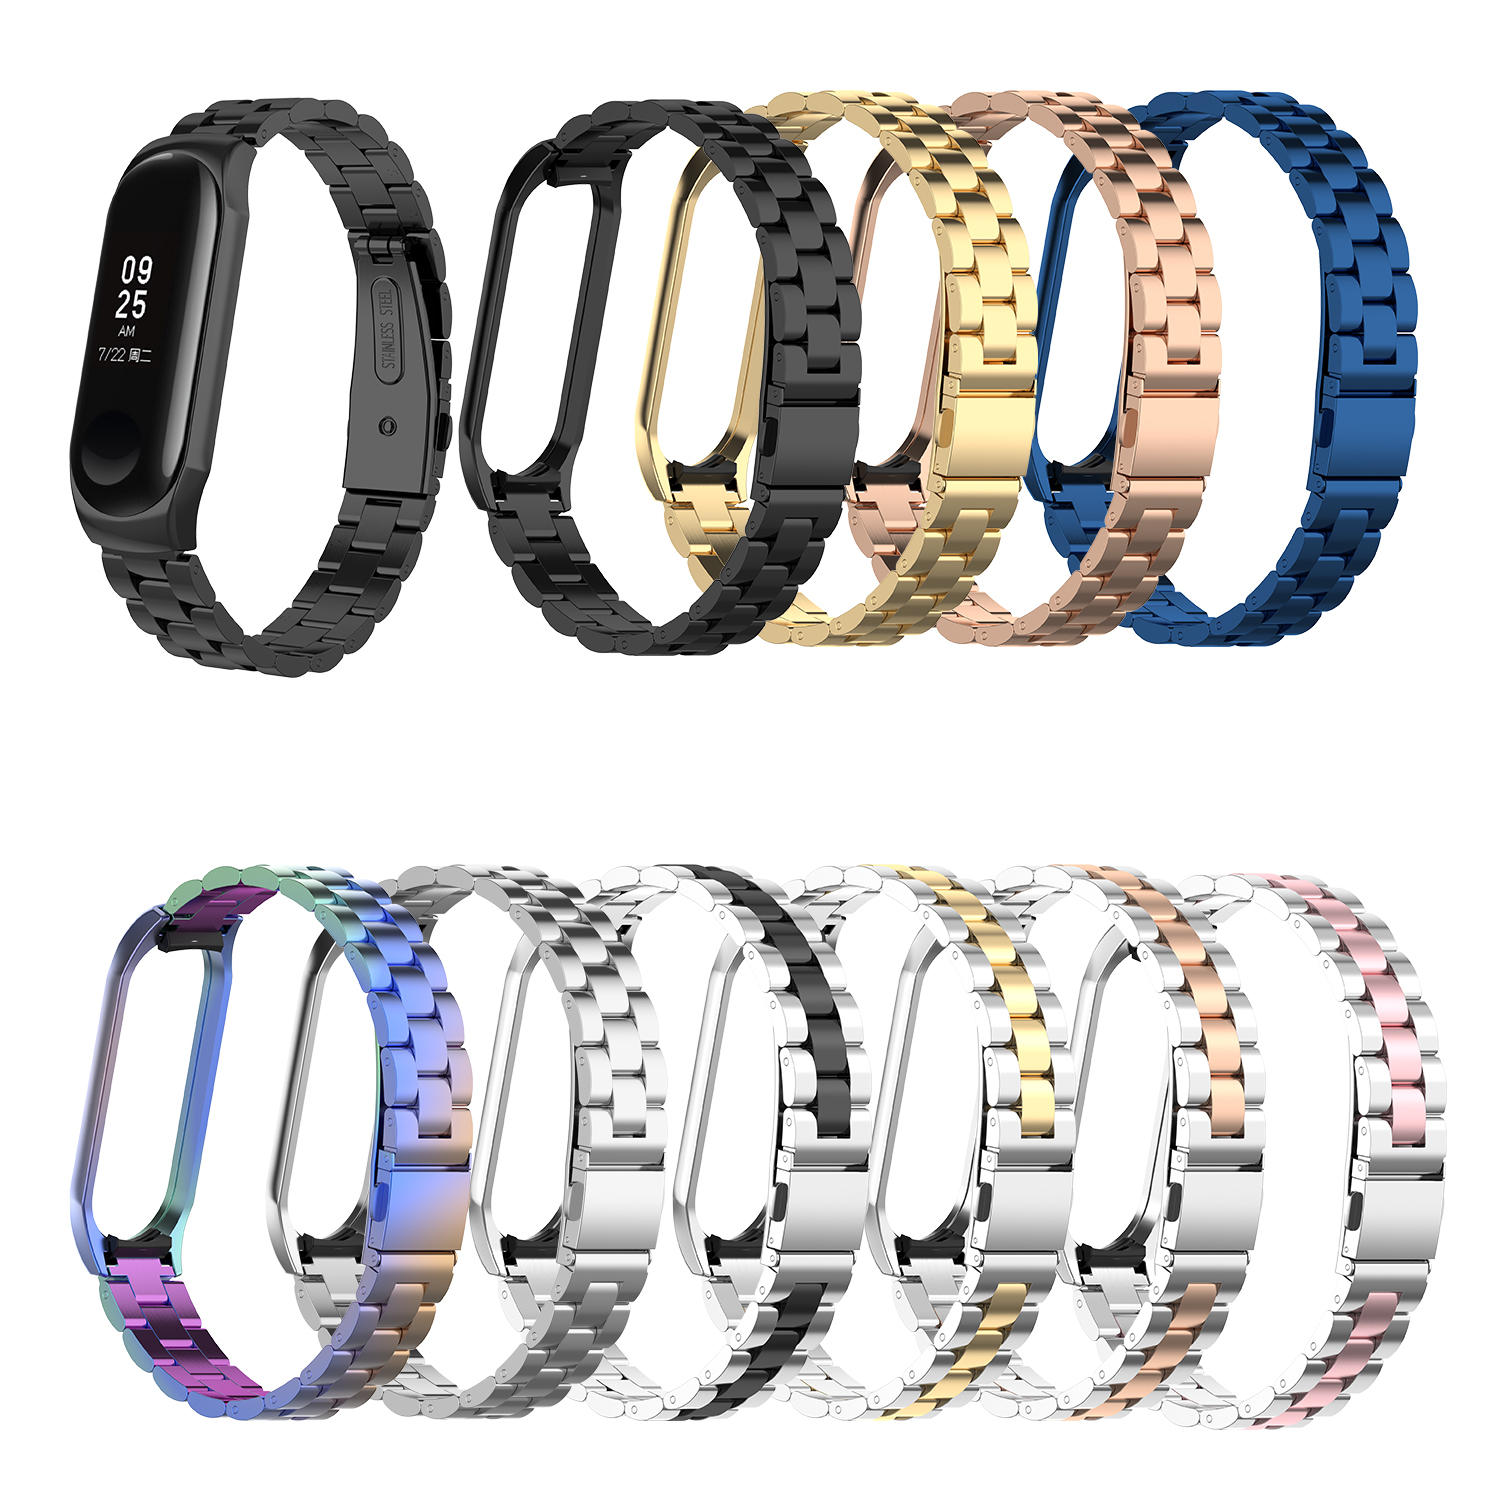 Bakeey Colorful Stainless Steel Watch Band Penggantian Watch Strap untuk Xiaomi mi band 3/4